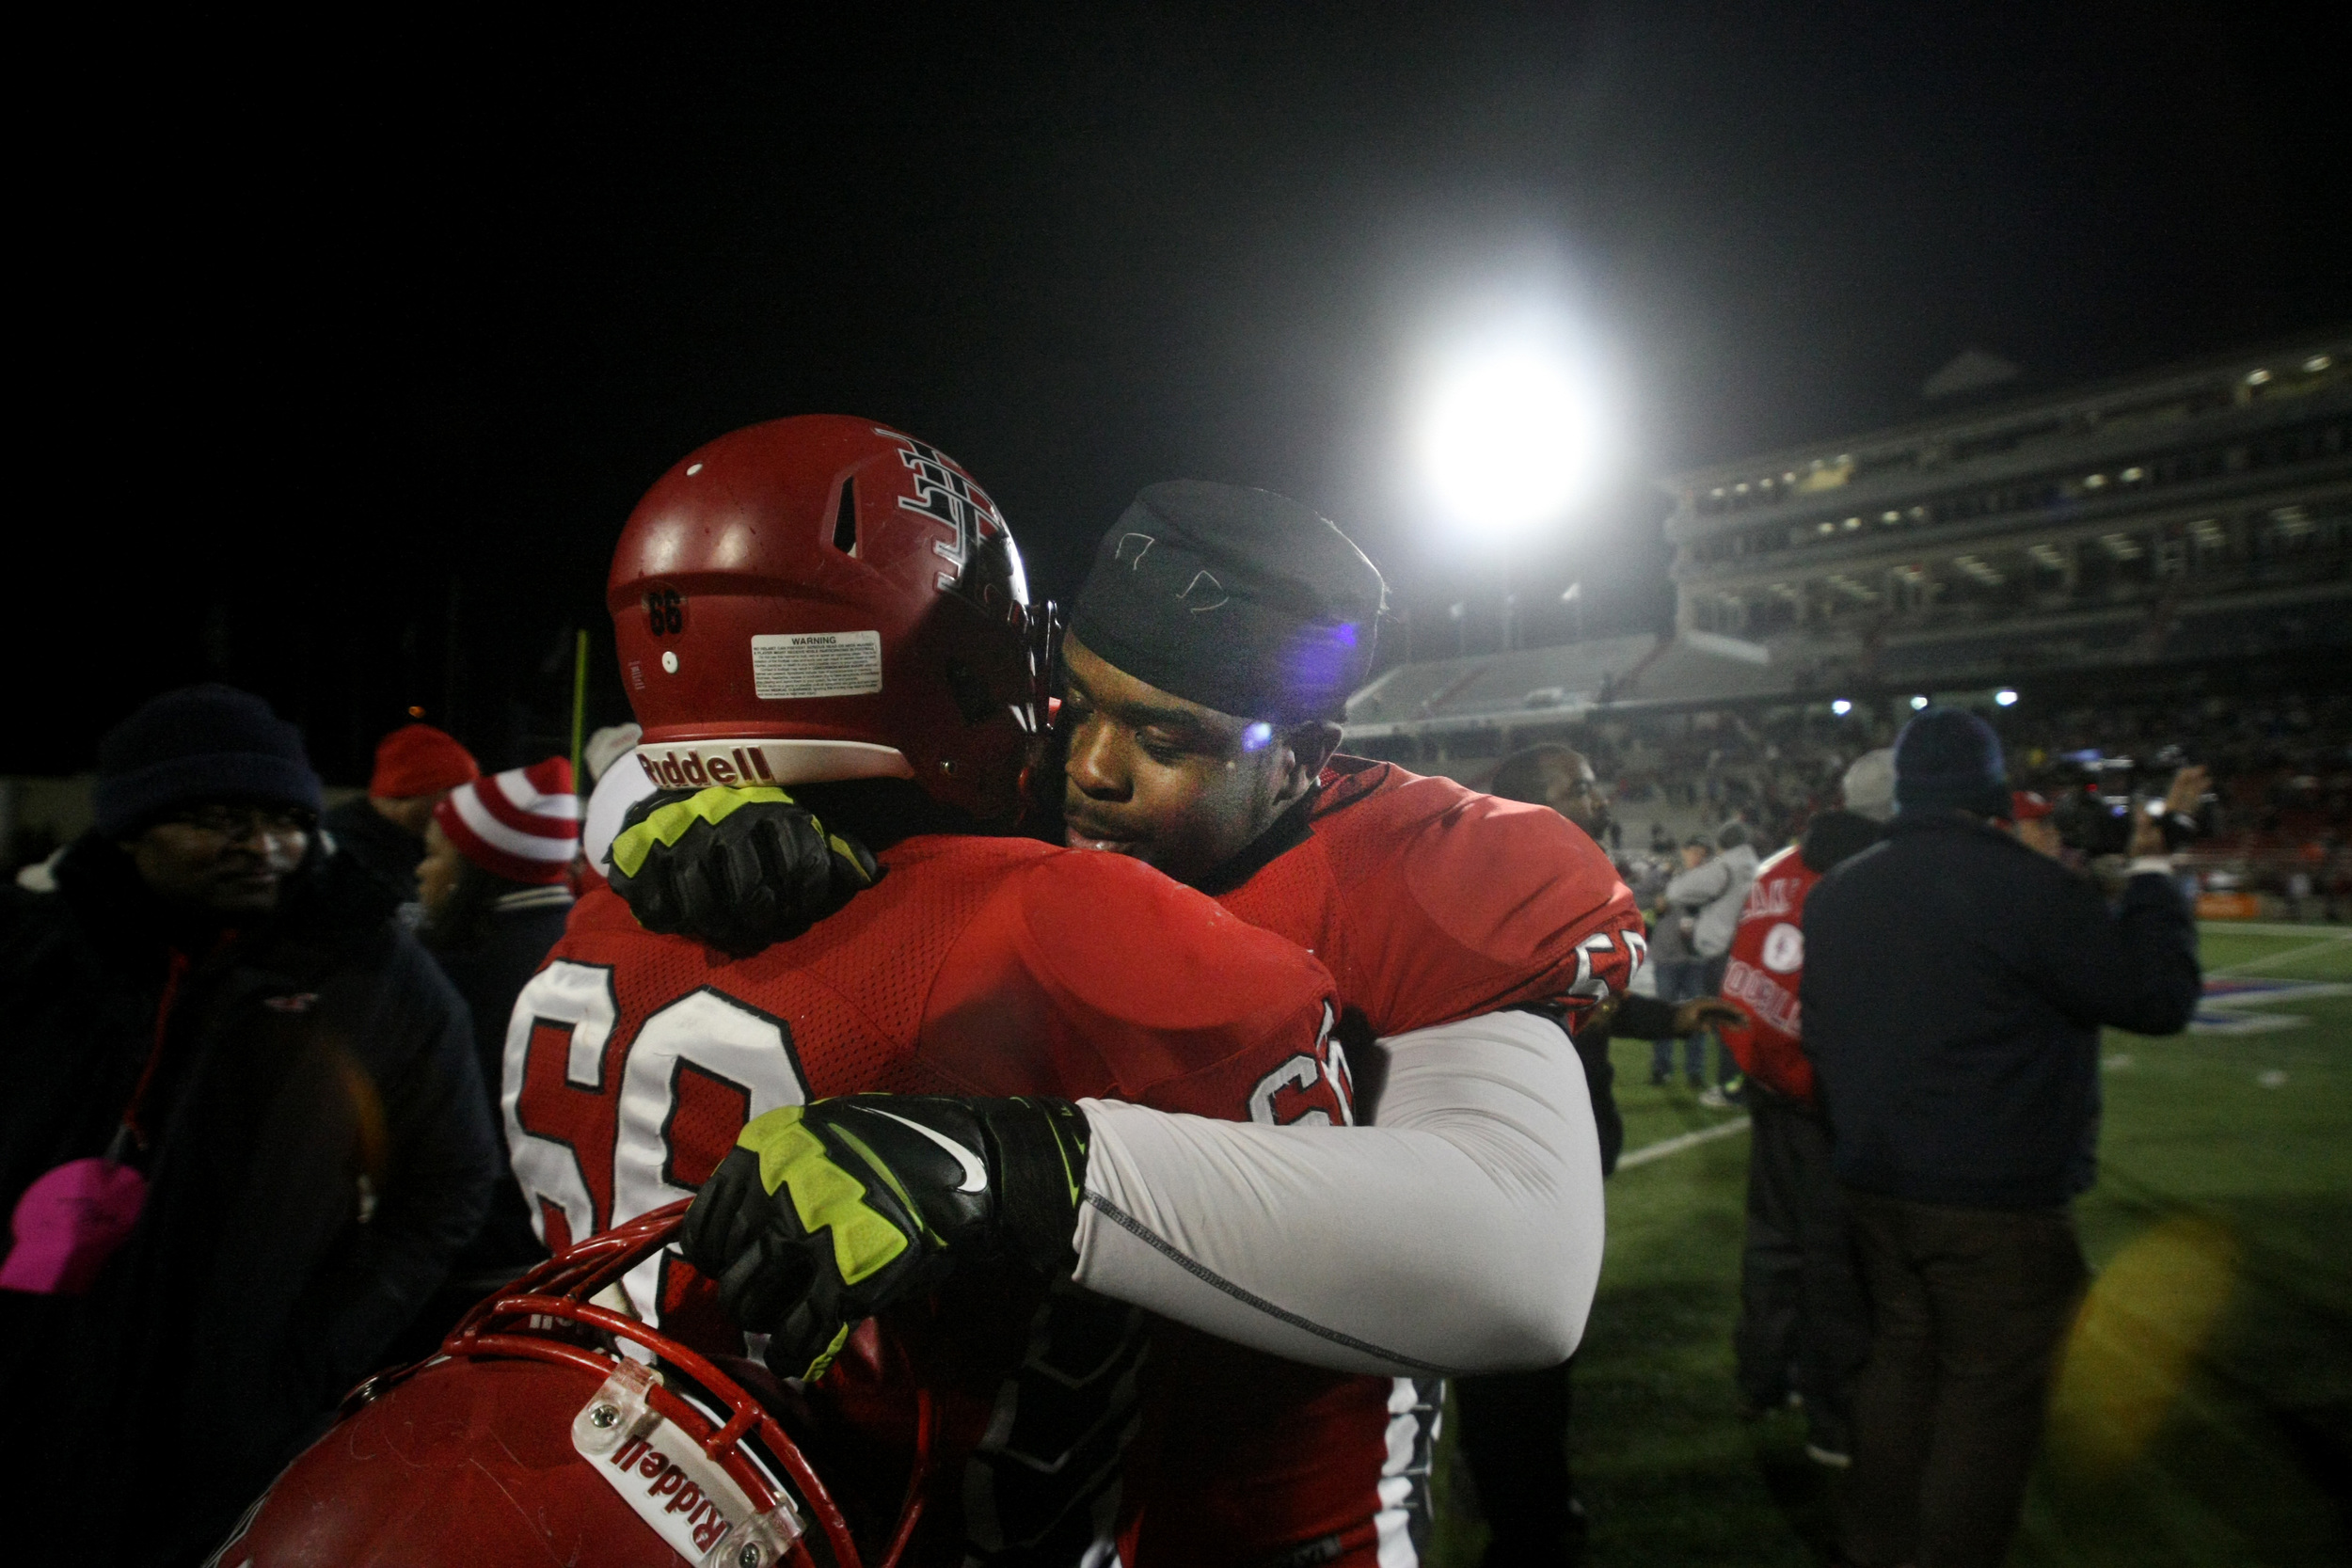 Lake Taylor's Brian Moore, right, celebrates with teammate Anthony Williams after the Titans beat Salem 41-16 to win the Group 4A South championship, Saturday, Dec. 13, 2014 at Williams Field in Lynchburg.  (Jason Hirschfeld | For The Virginian-Pilot)